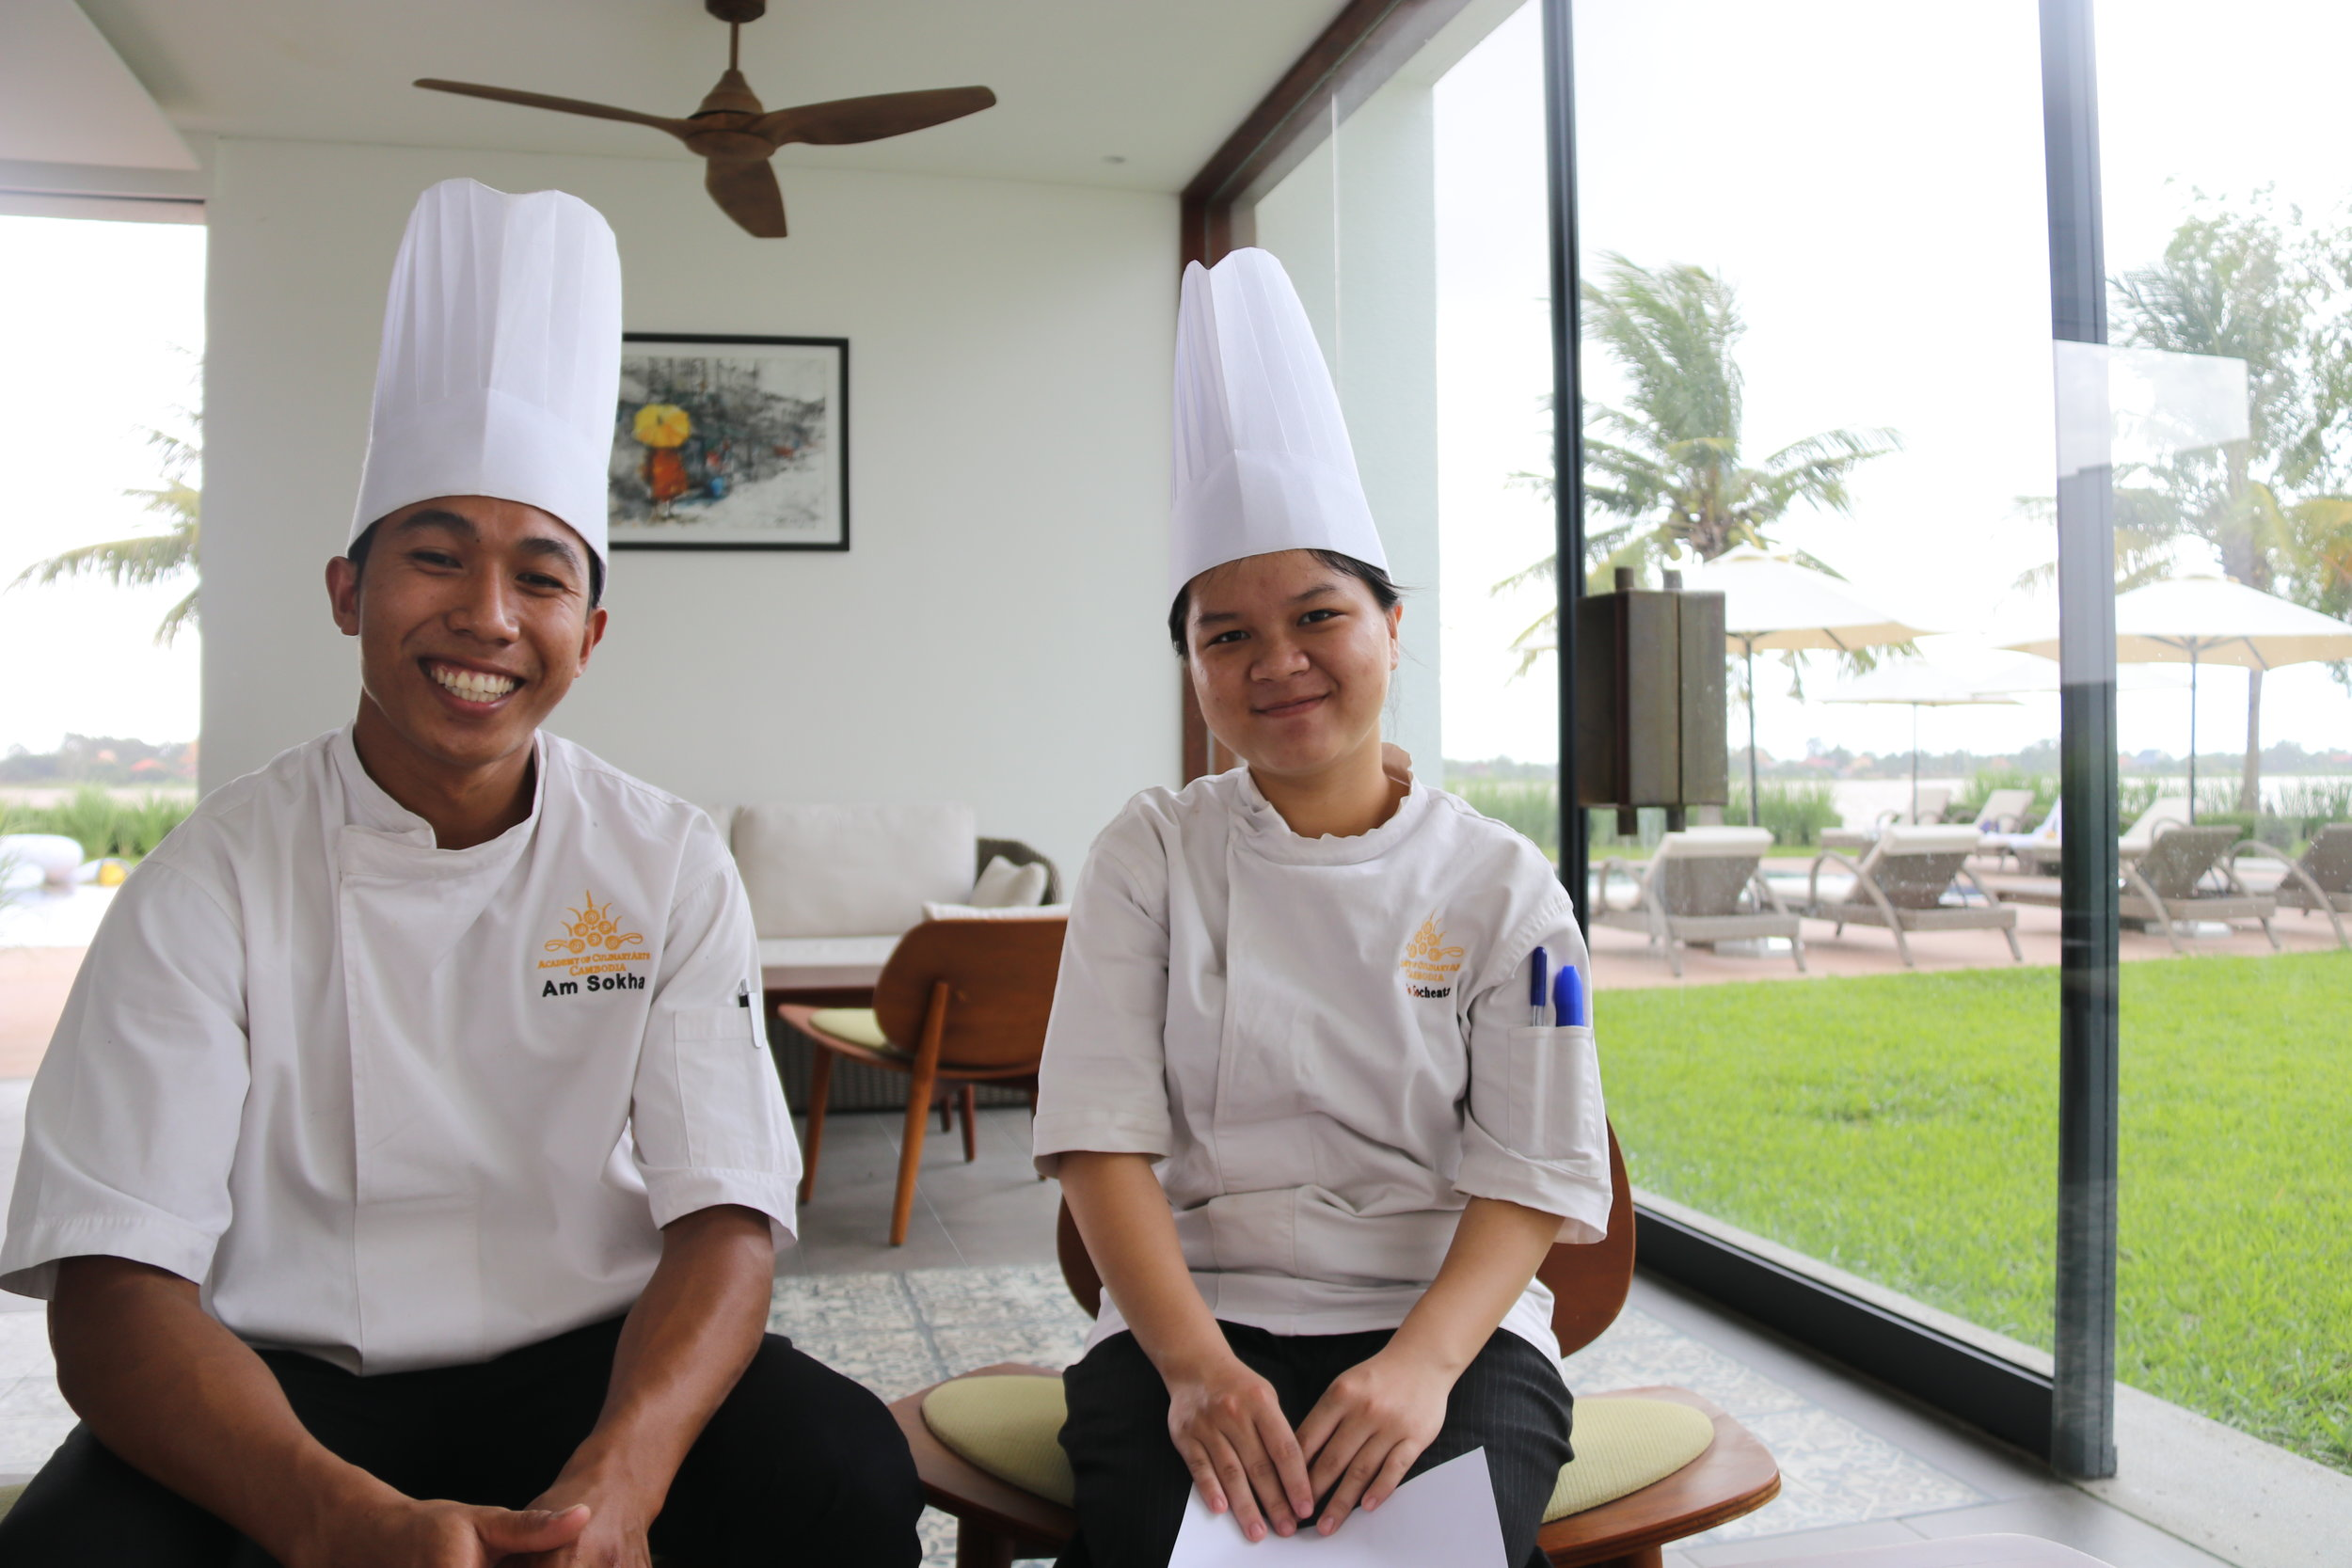 Our Scholars - The Naomi Tami Memorial Scholarship Fund, through Shift360 Foundation, honors the memory of Naomi Tami by providing scholarships for disadvantaged Cambodian youth to study at the Academy of Culinary Arts Cambodia.